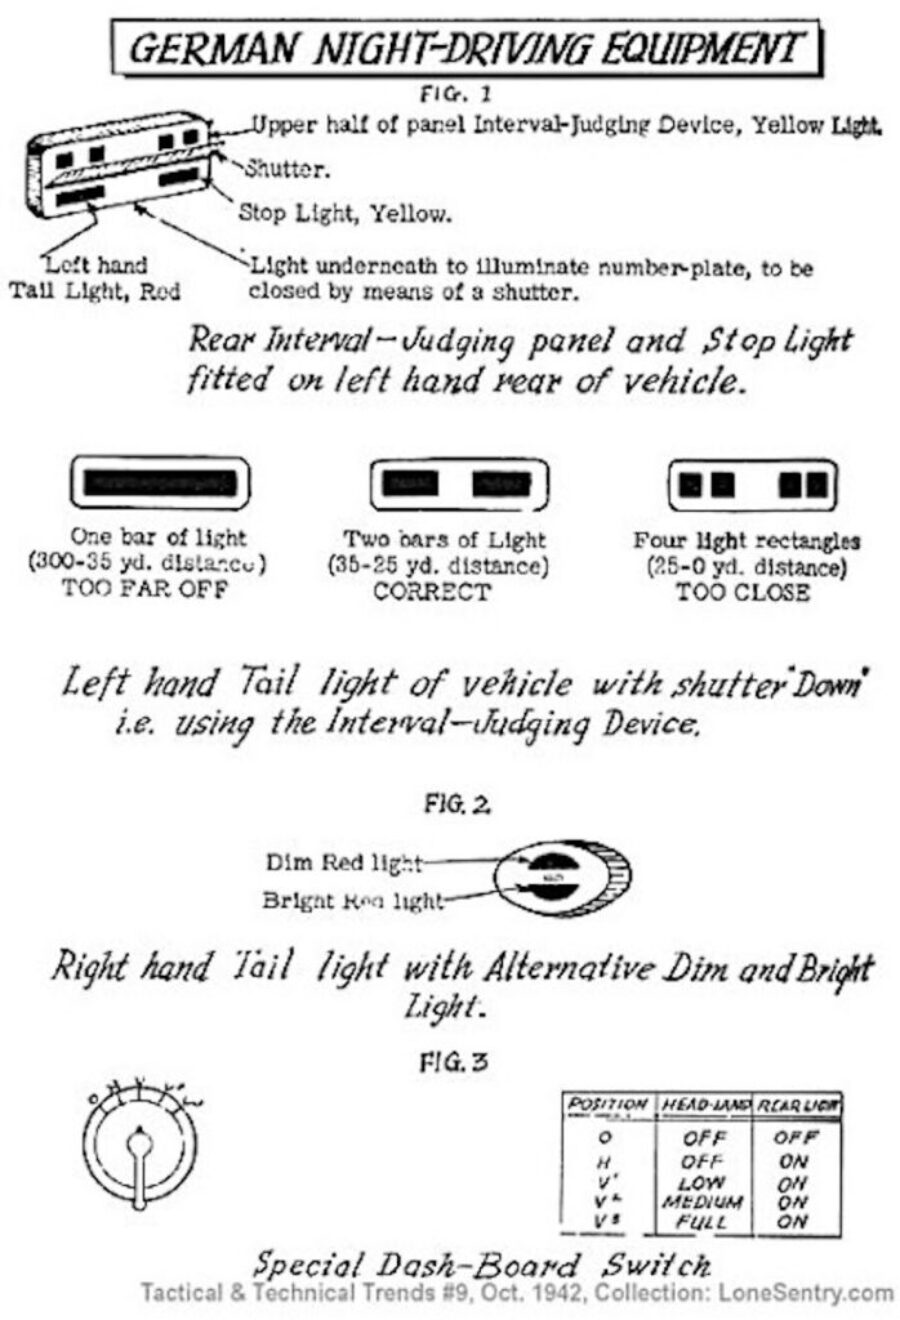 Night-Driving Equipment for German Vehicles